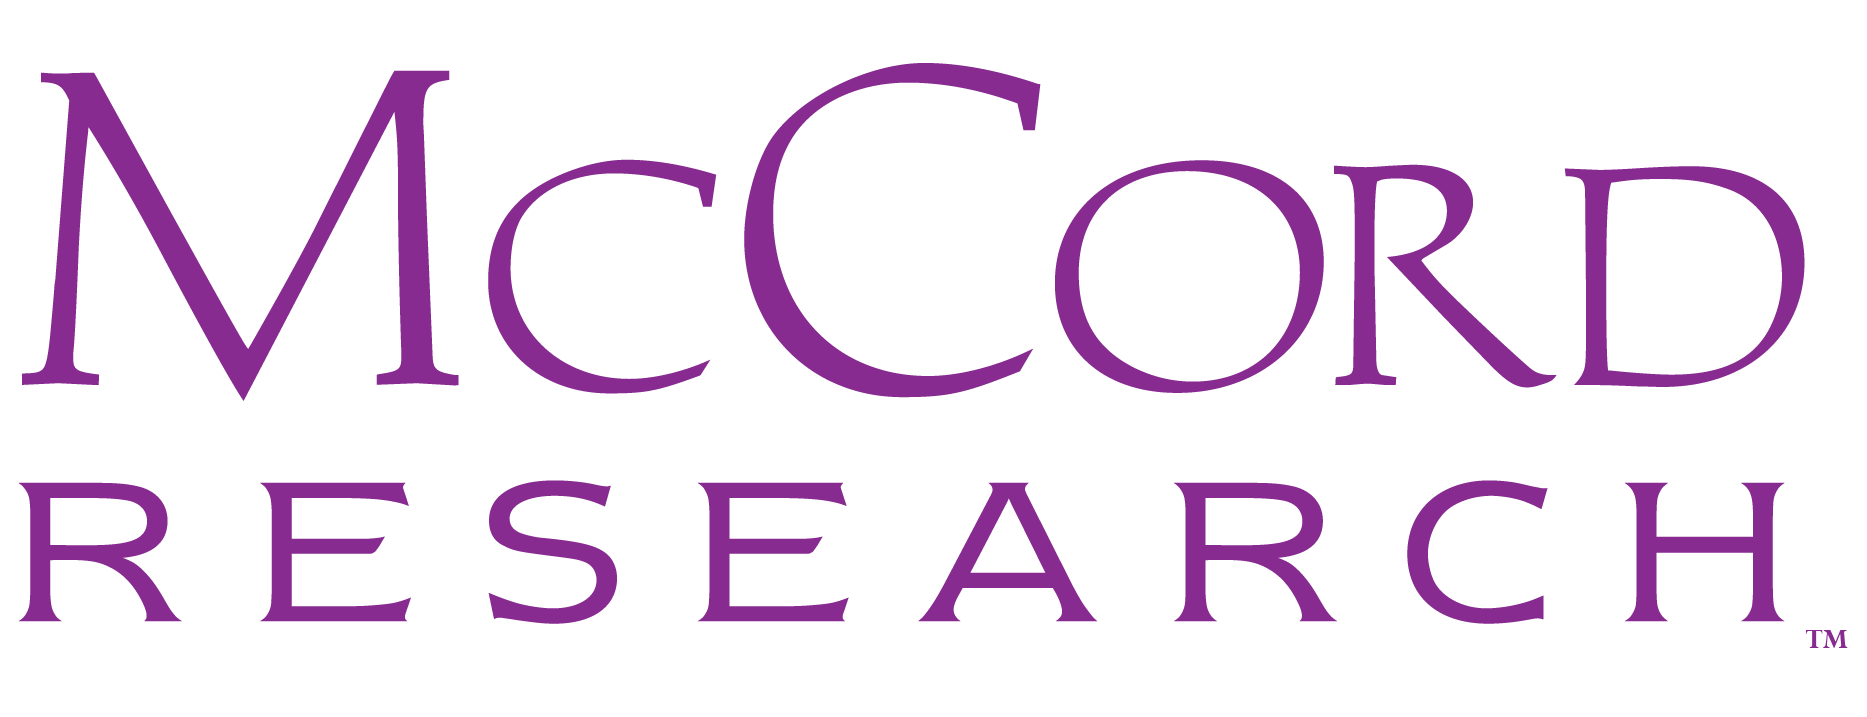 McCord_ResearchLogo